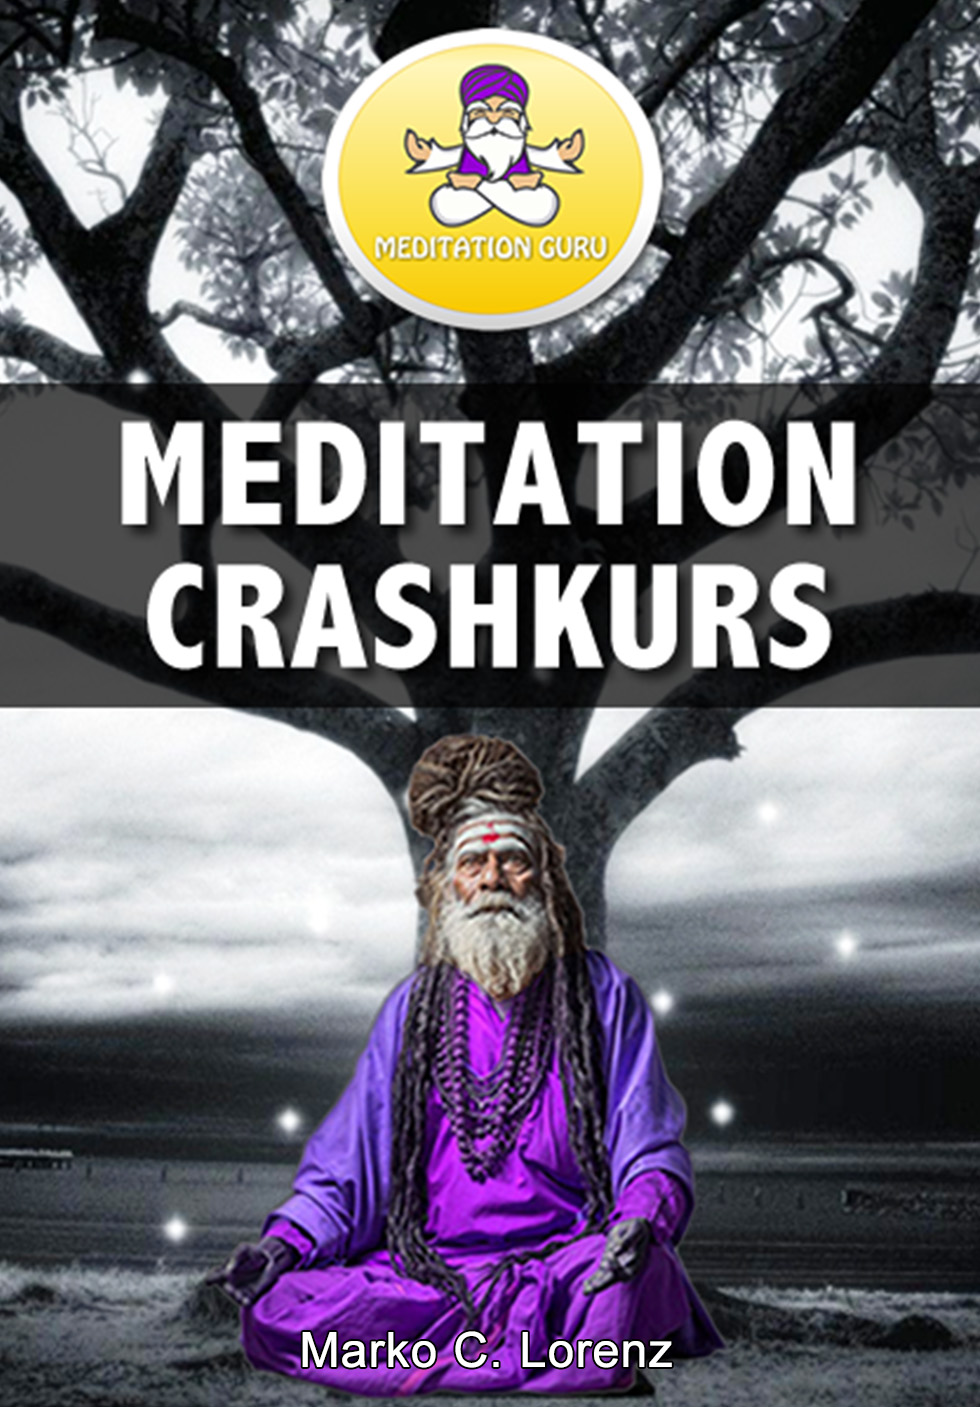 Meditation Crashkurs